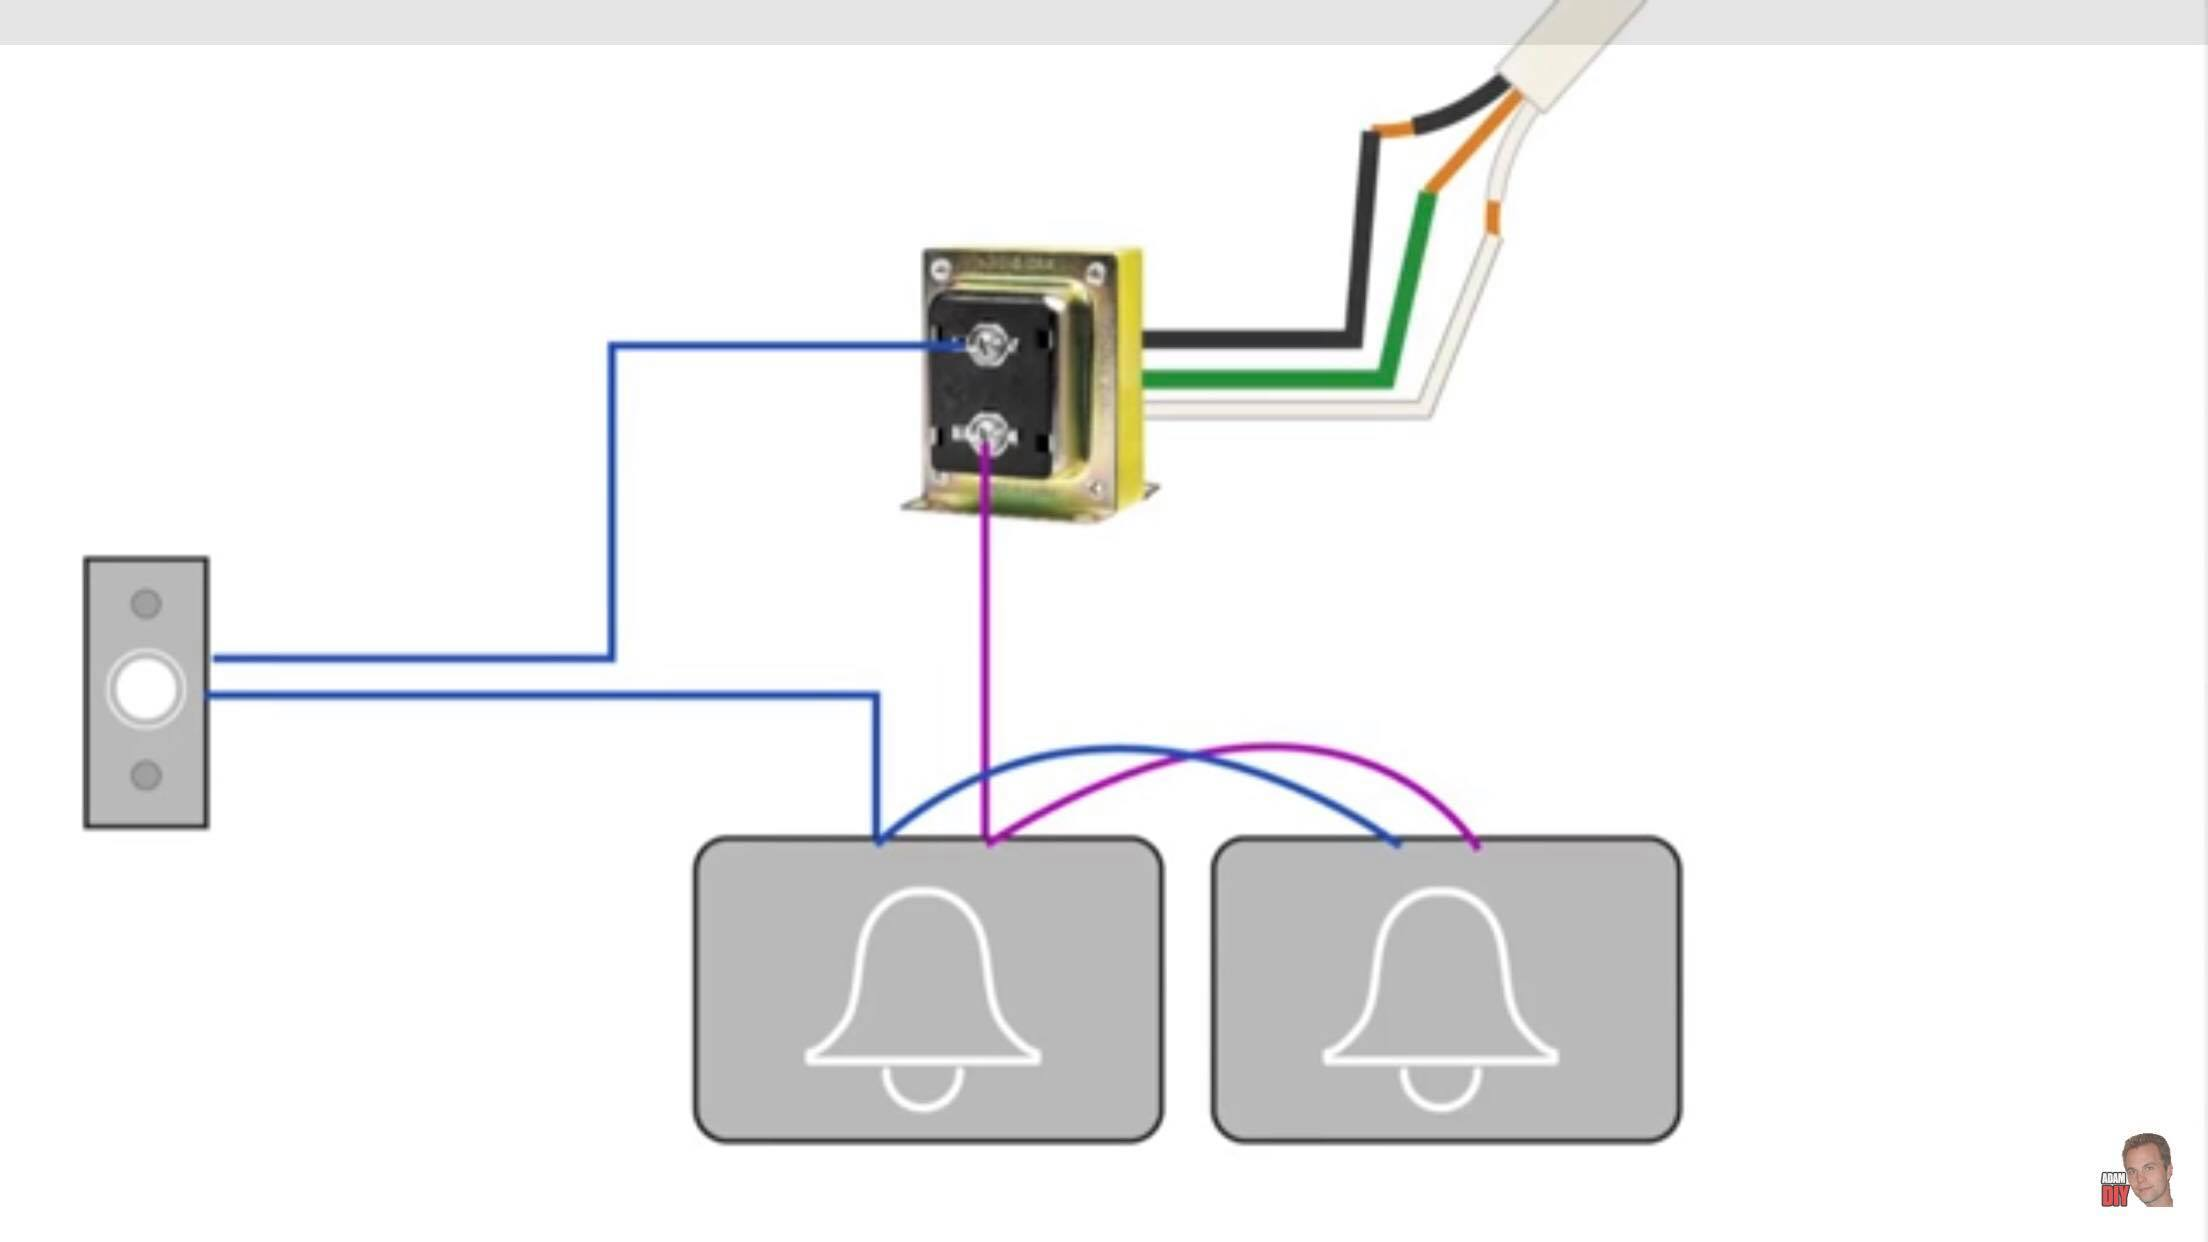 Help Wiring Power for Video Doorbell & IP Chime Replacement -  DoItYourself.com Community ForumsDoItYourself.com